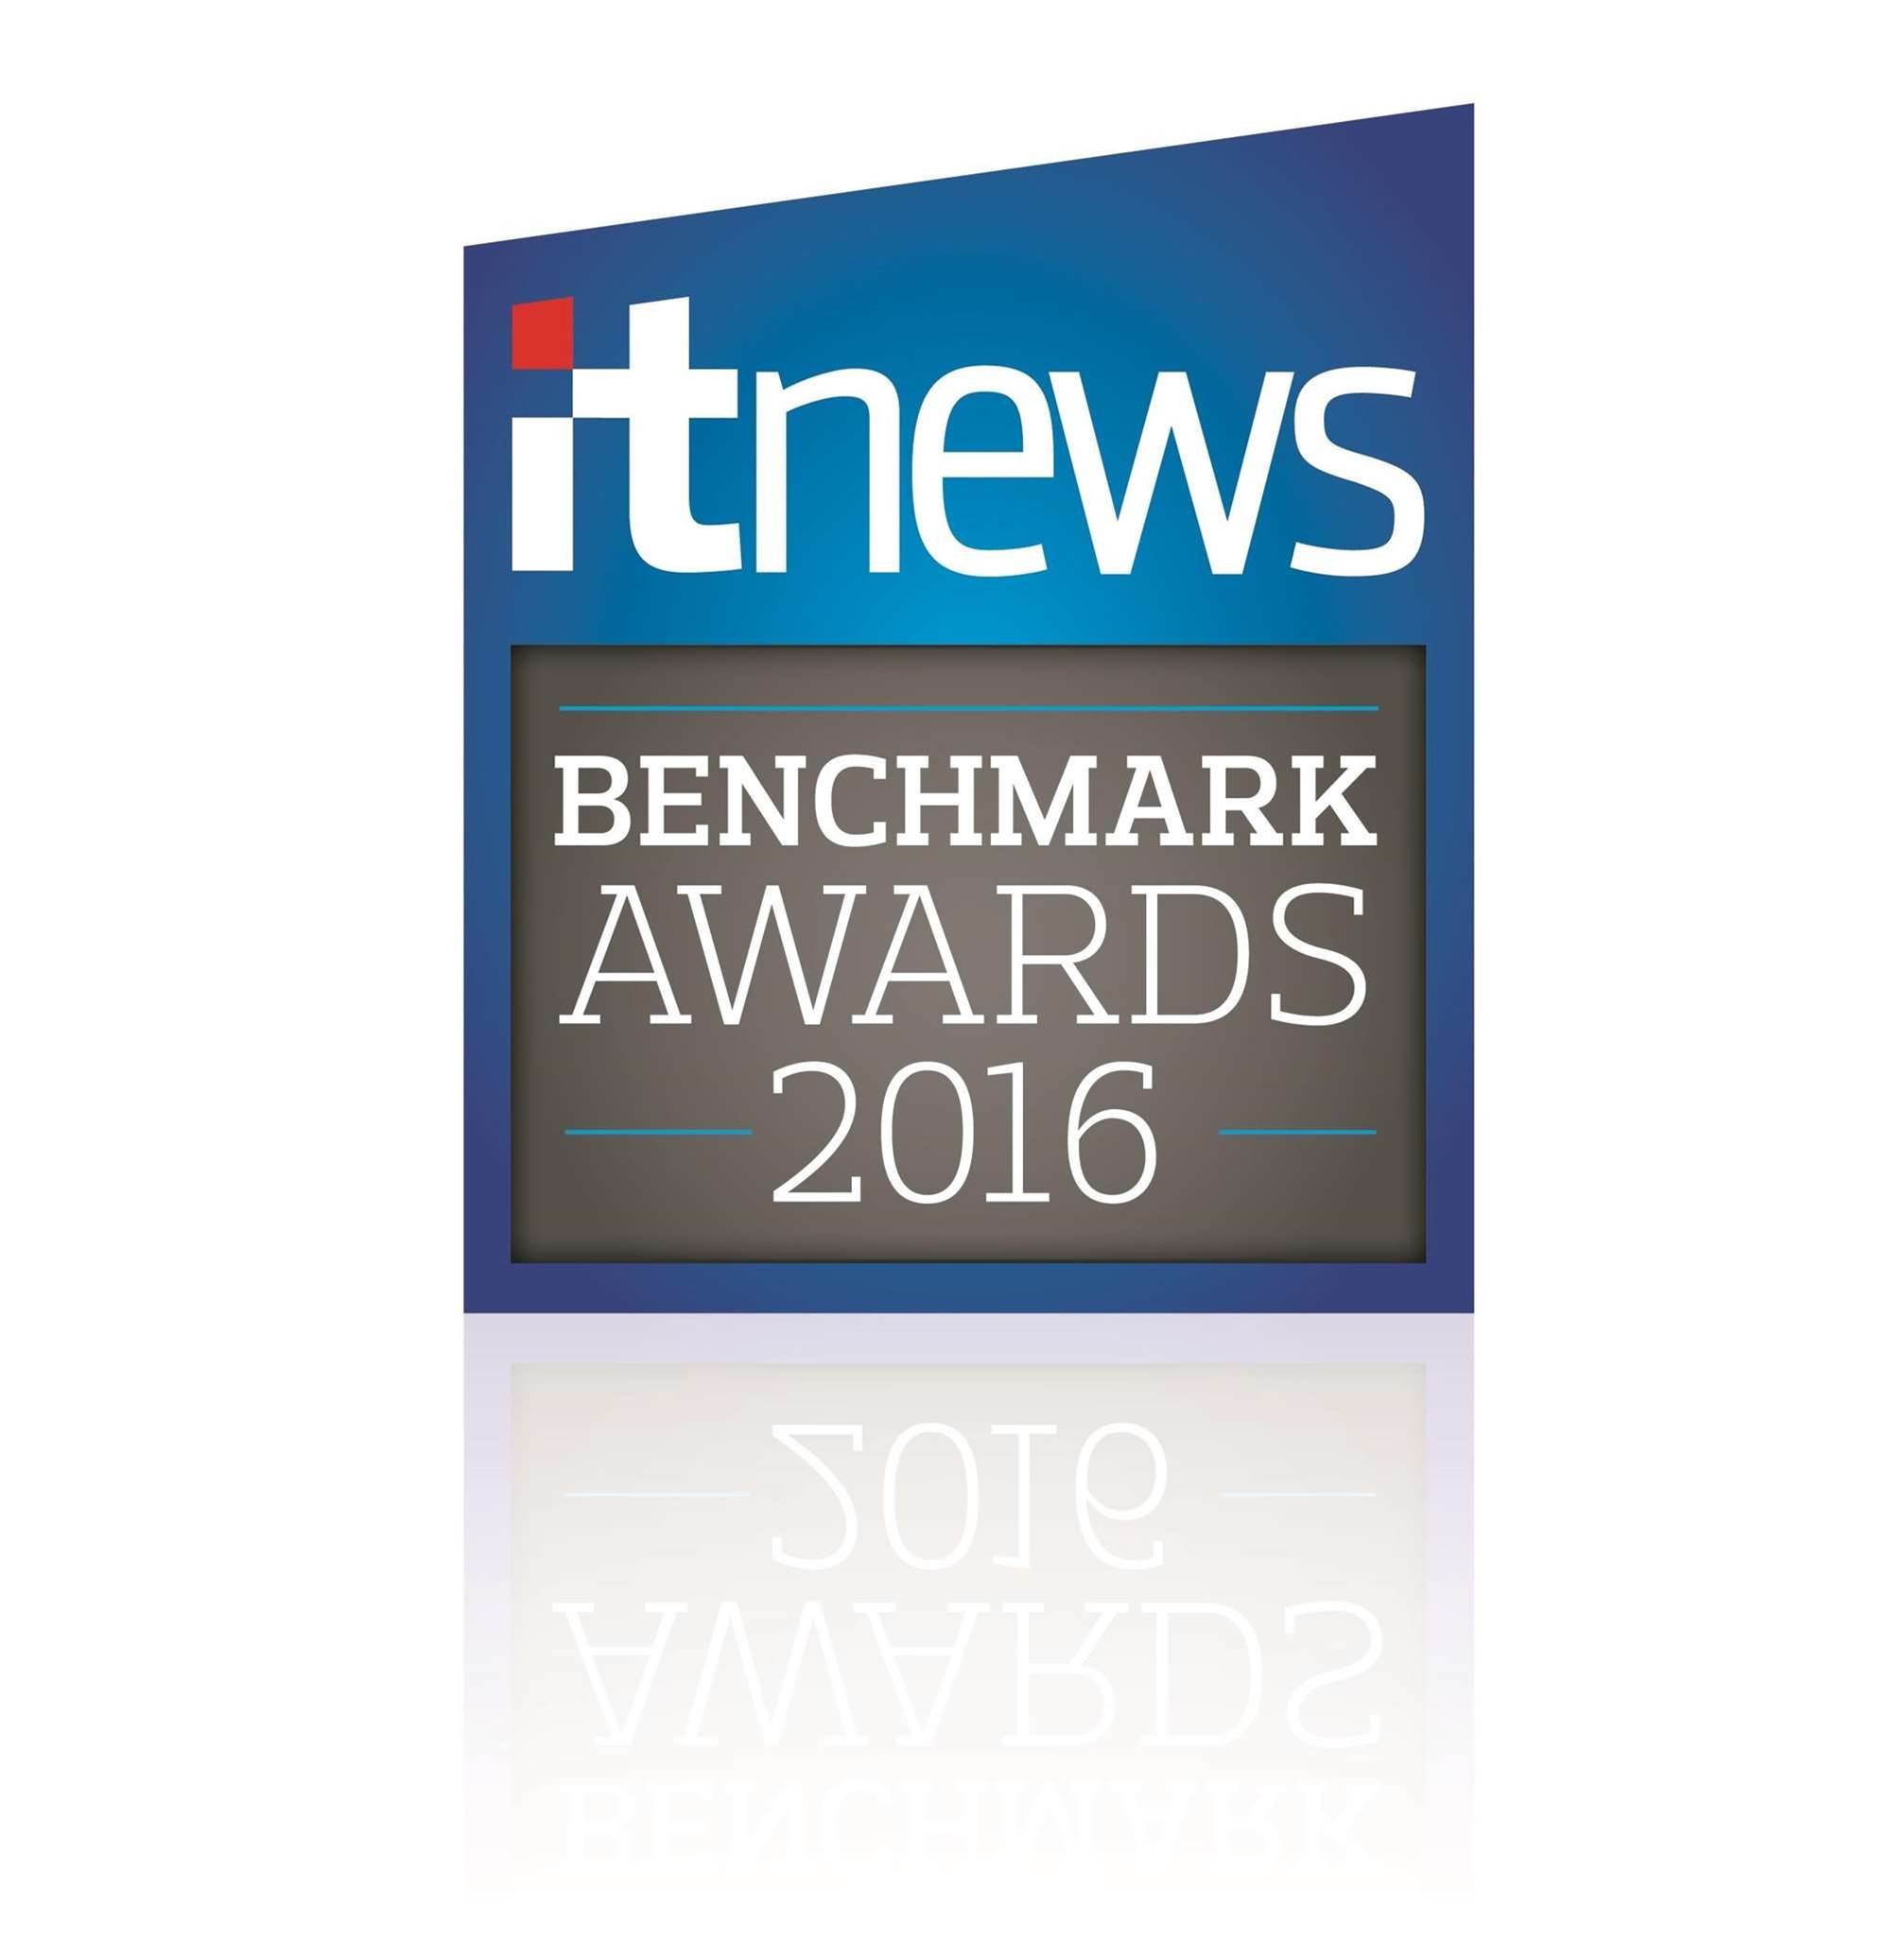 Meet the 2016 Benchmark Awards finalists